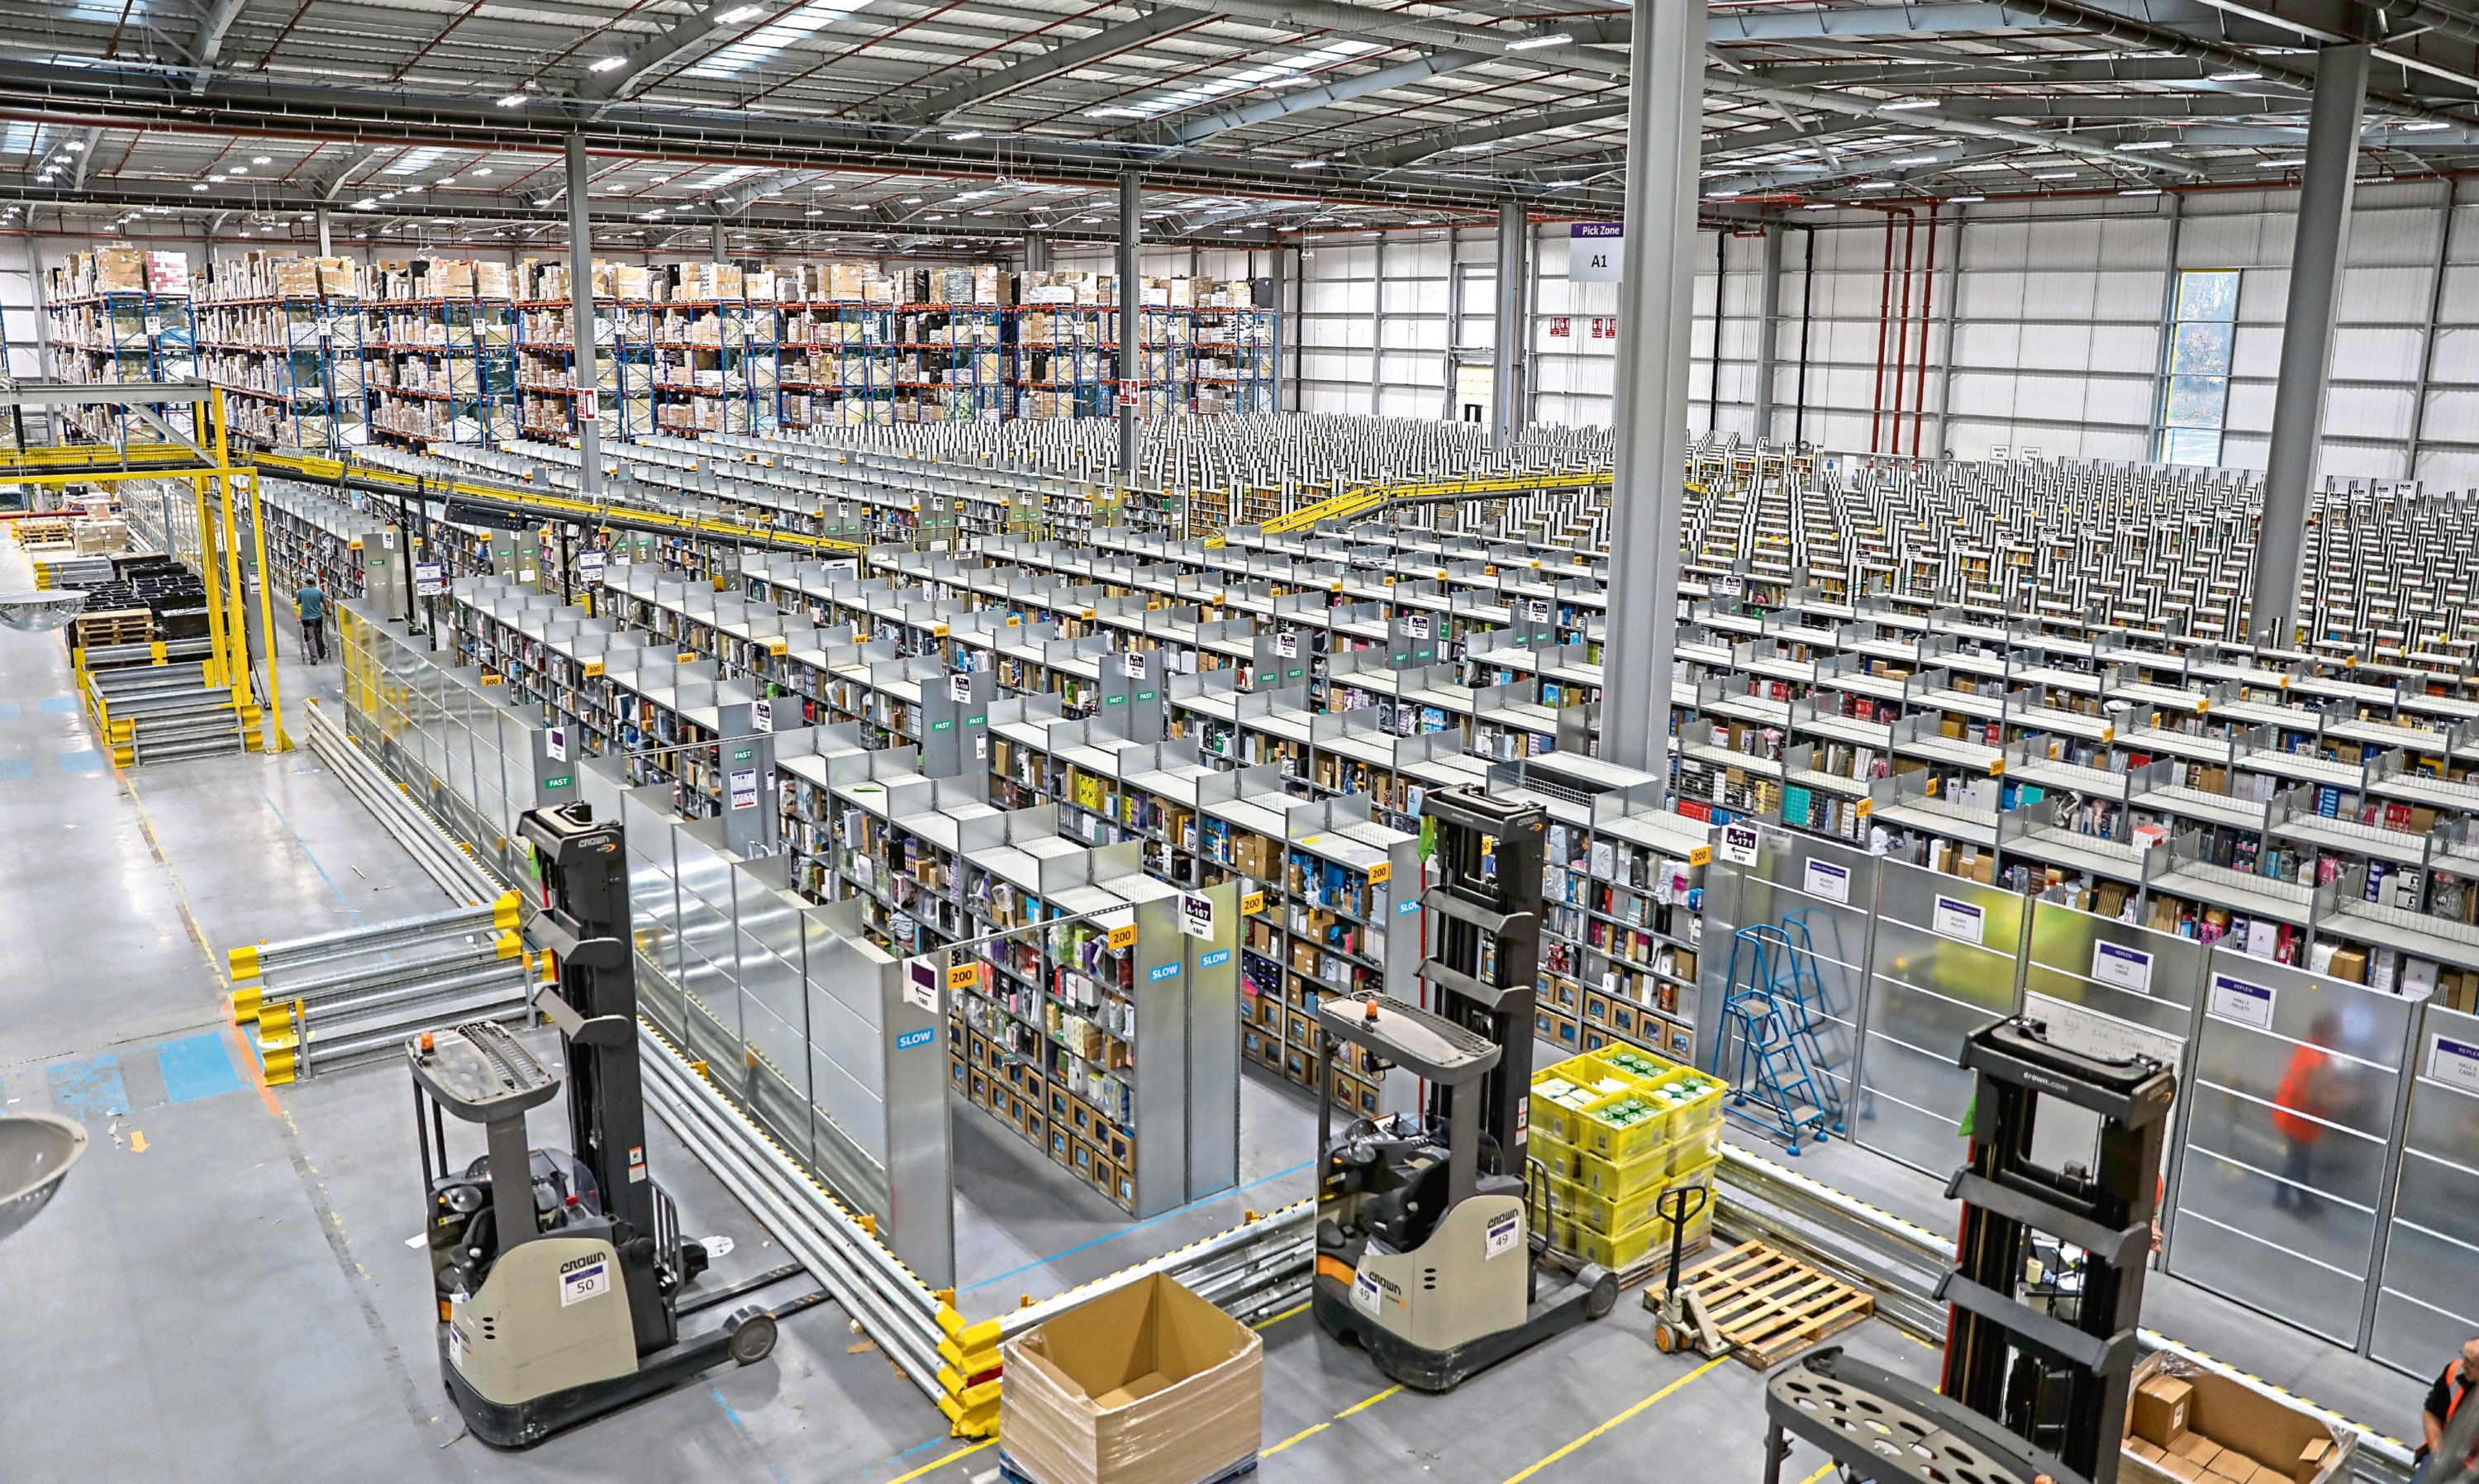 The Amazon distribution centre in Dunfermline.